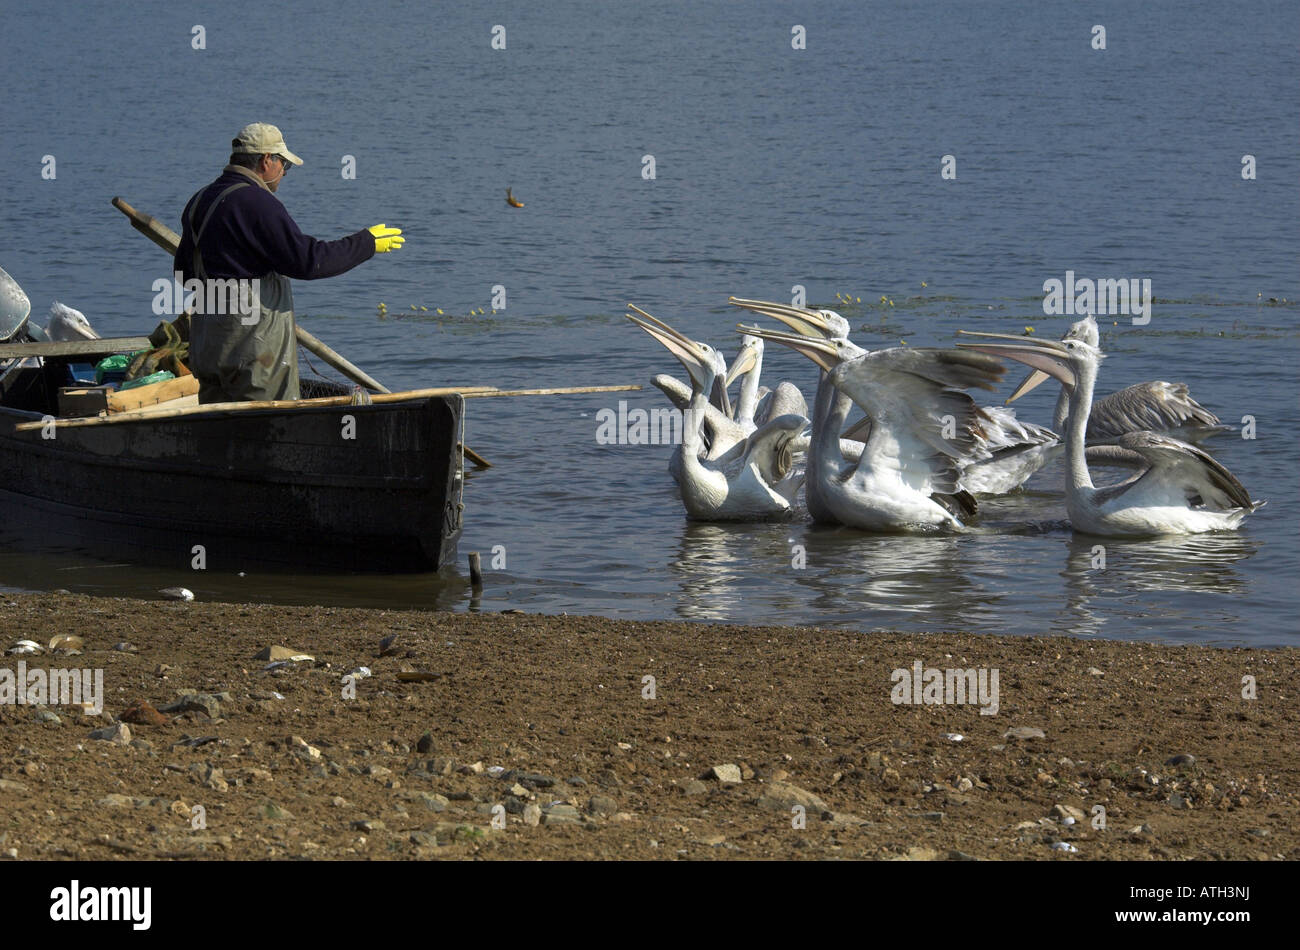 Dalmatian Pelican (Pelecanus crispus). Group next to fishing boat hoping for a hand out - Stock Image